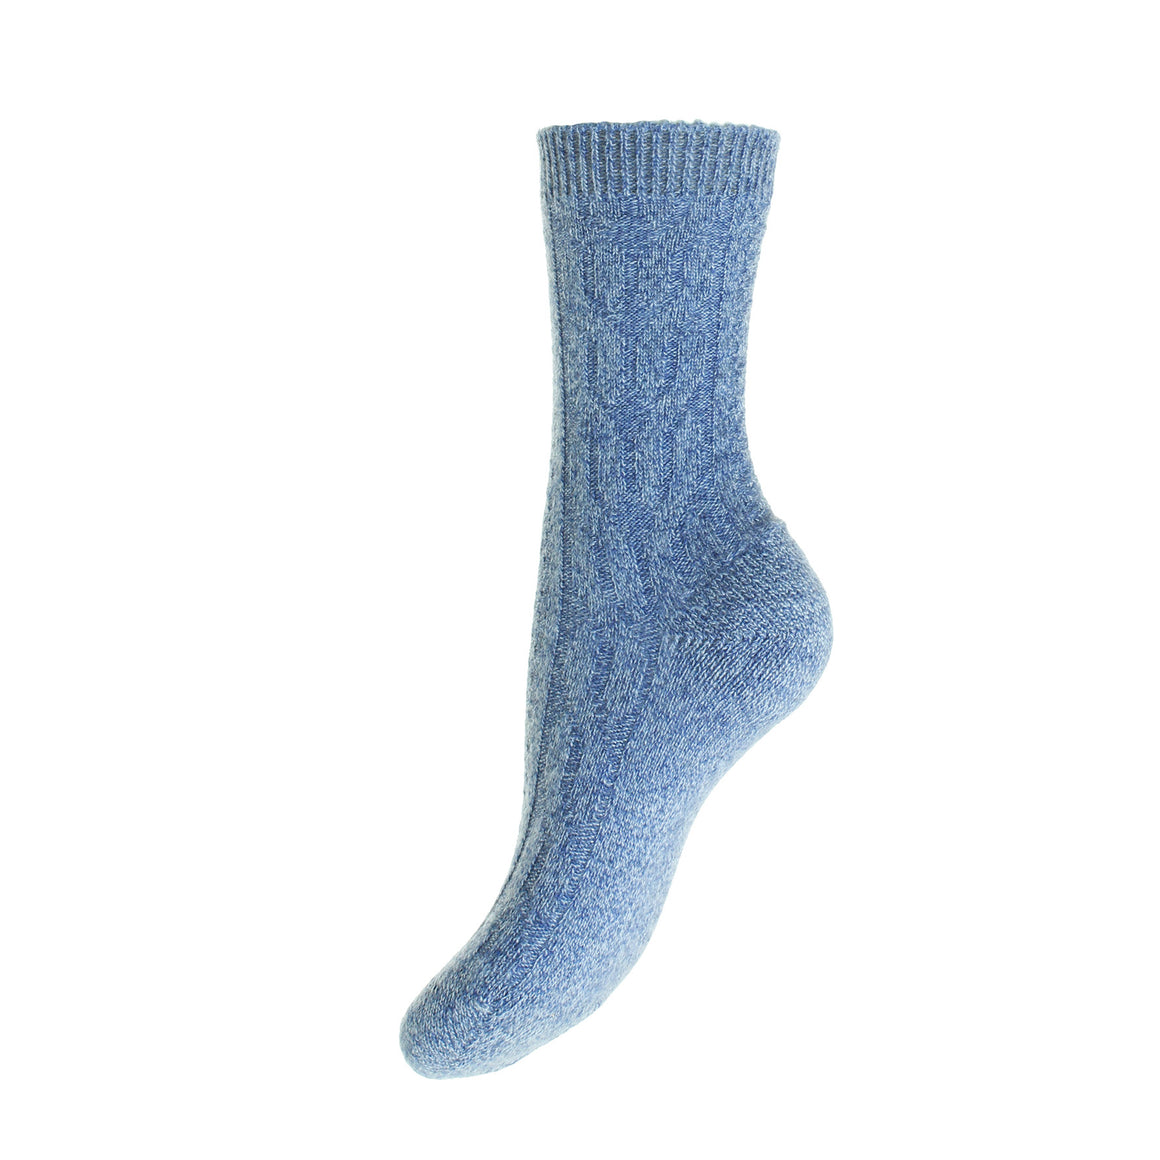 Blue Cable Knit Ladies Cashmere Socks | Ankle Sock | buy now at The Cashmere Choice London